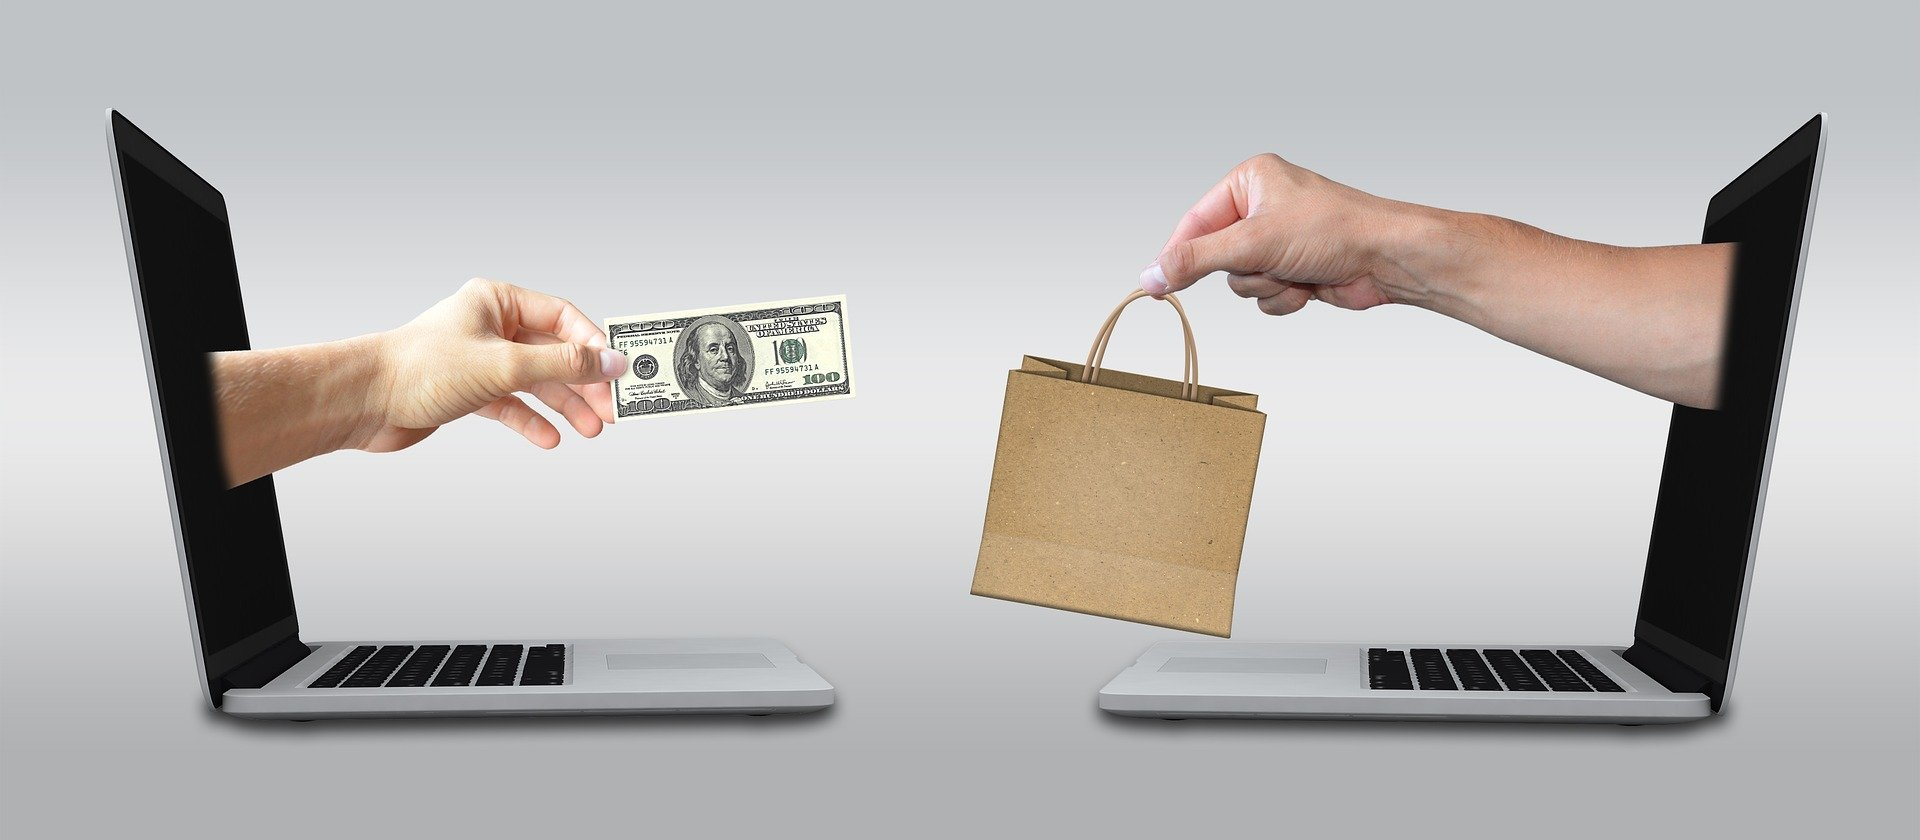 Two arms extending out from laptop screens and exchanging money with goods